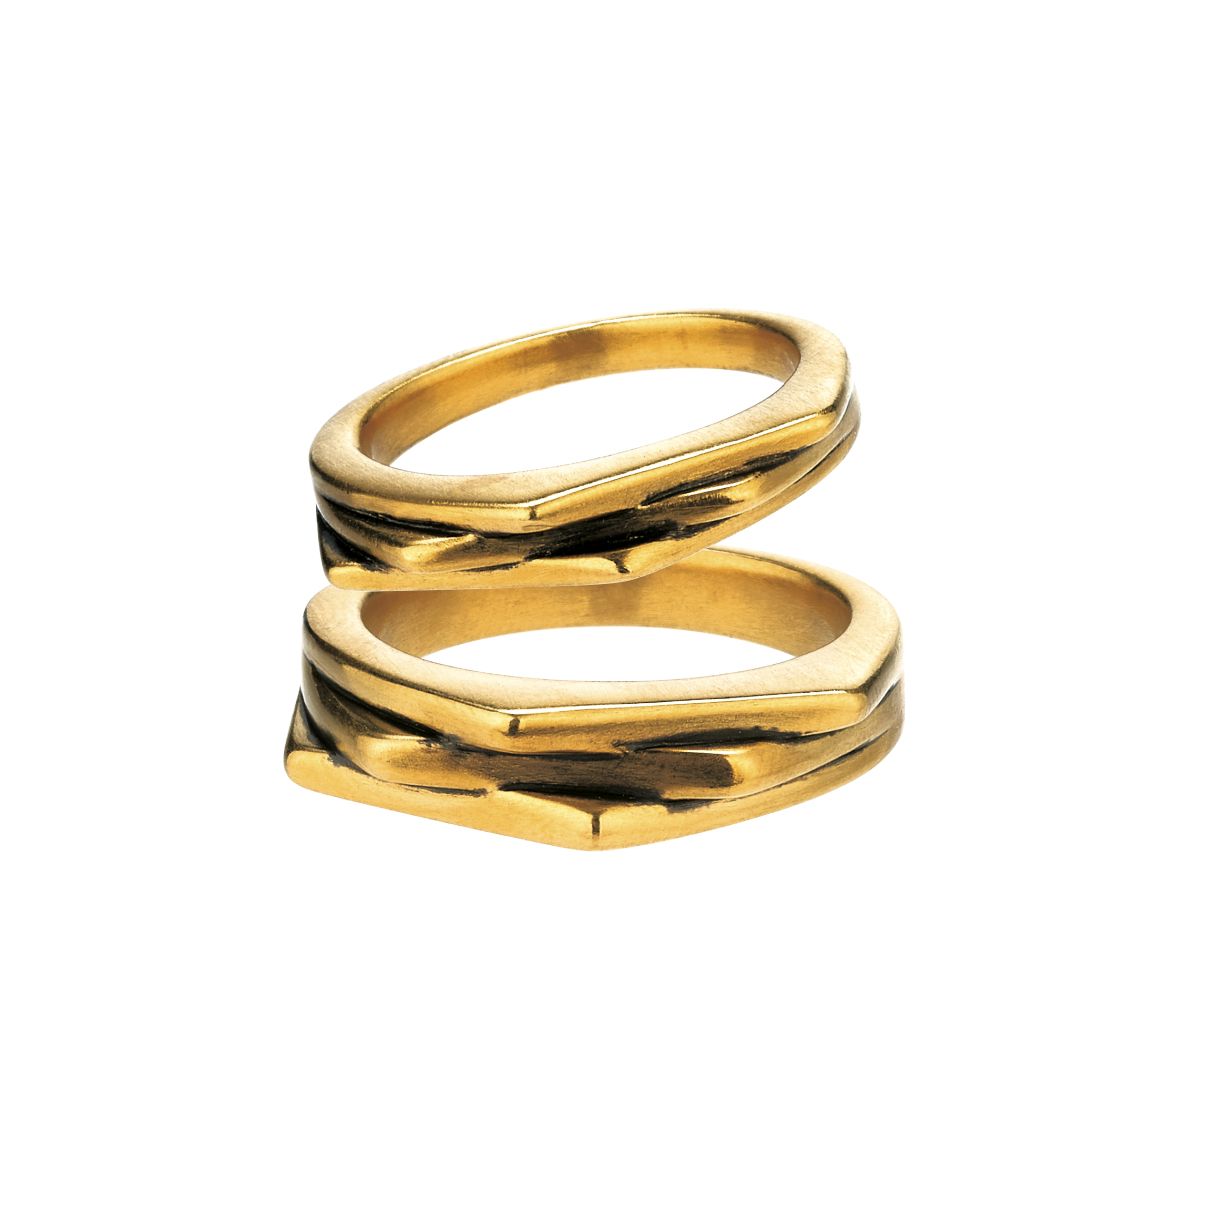 F-style Hey Cool Gold Rings